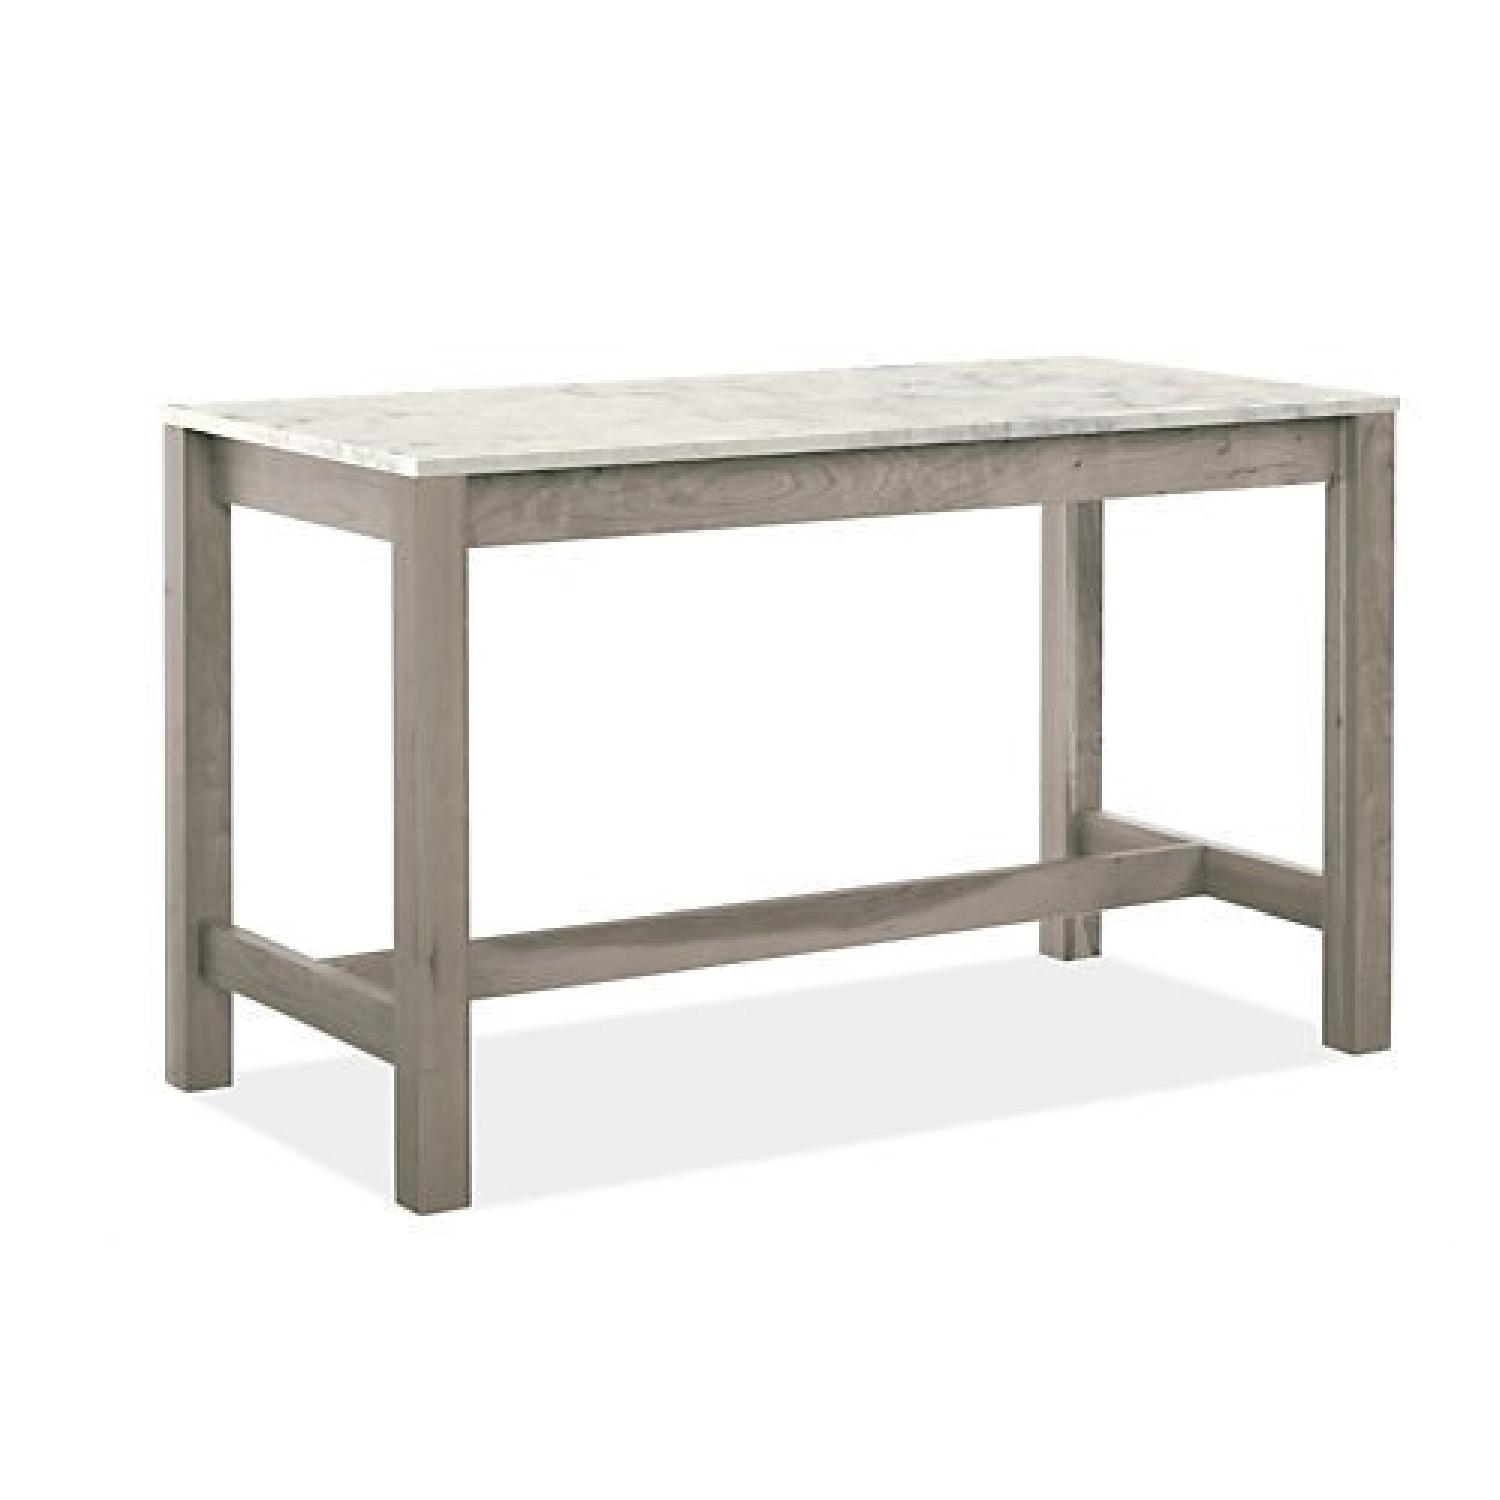 Room & Board Marbled Quartz Linden Counter Table